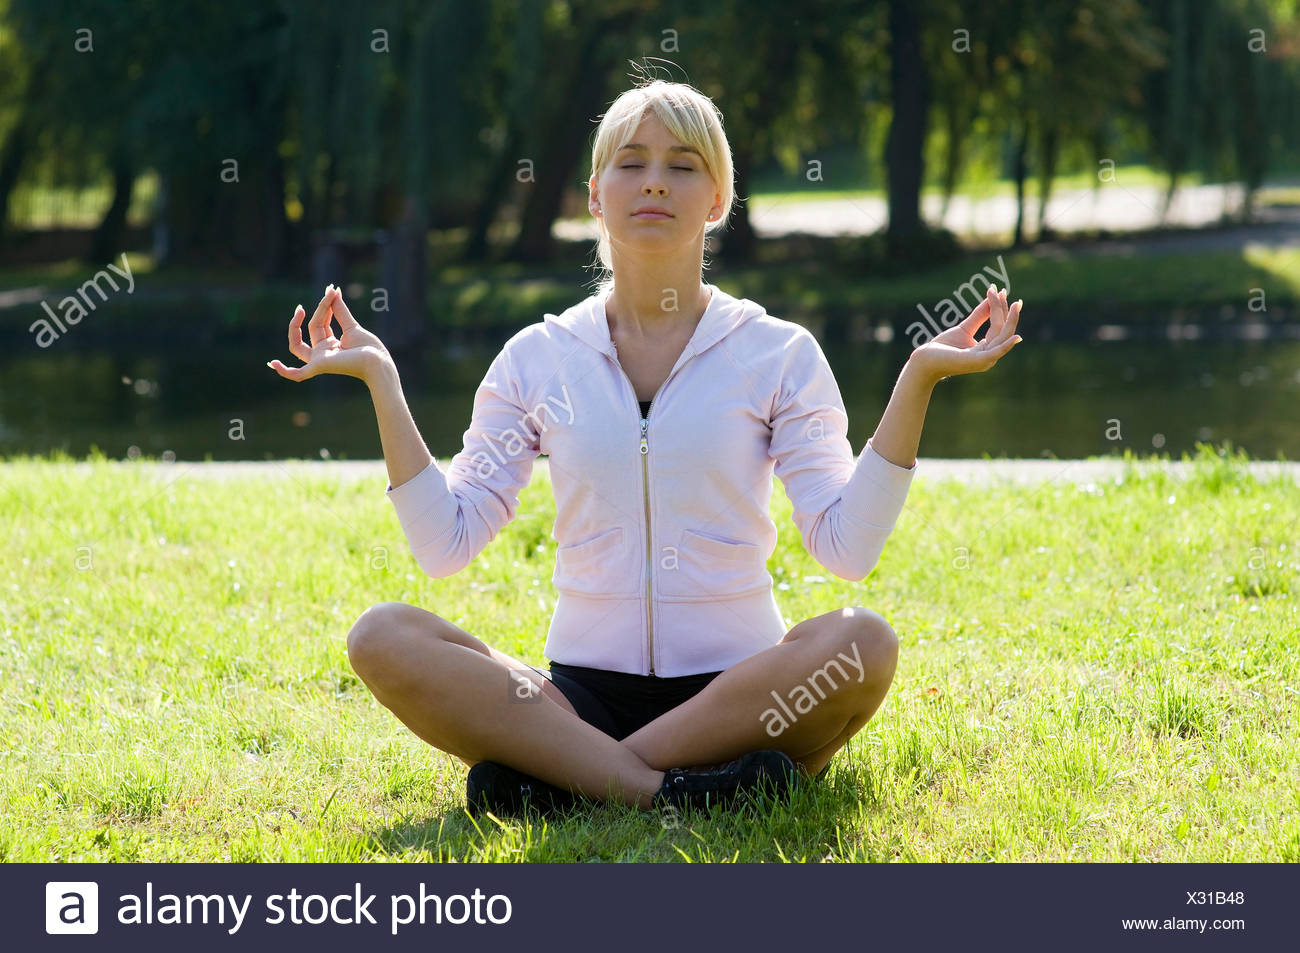 classic yoga pose Stock Photo - Alamy